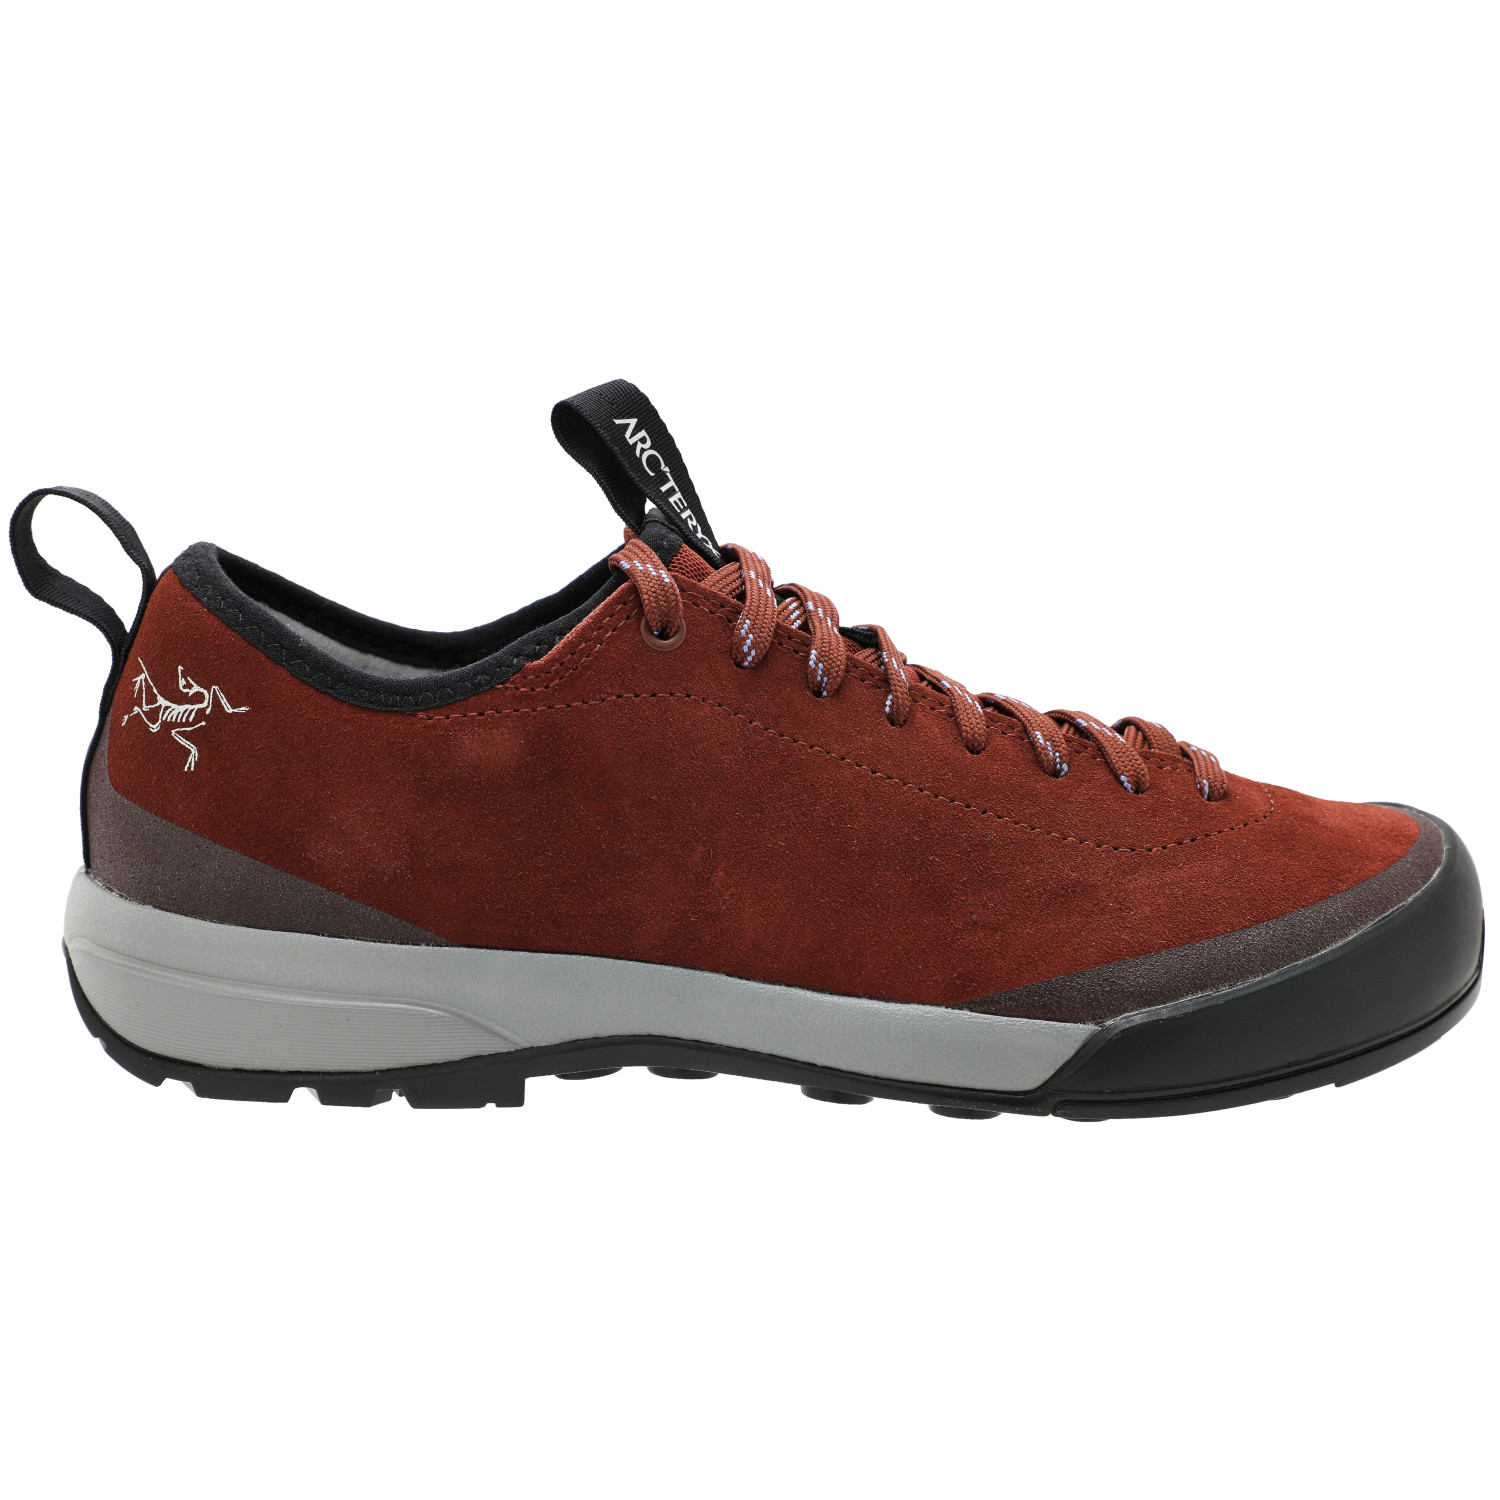 Main product image: Acrux SL Leather Approach Shoe Women's